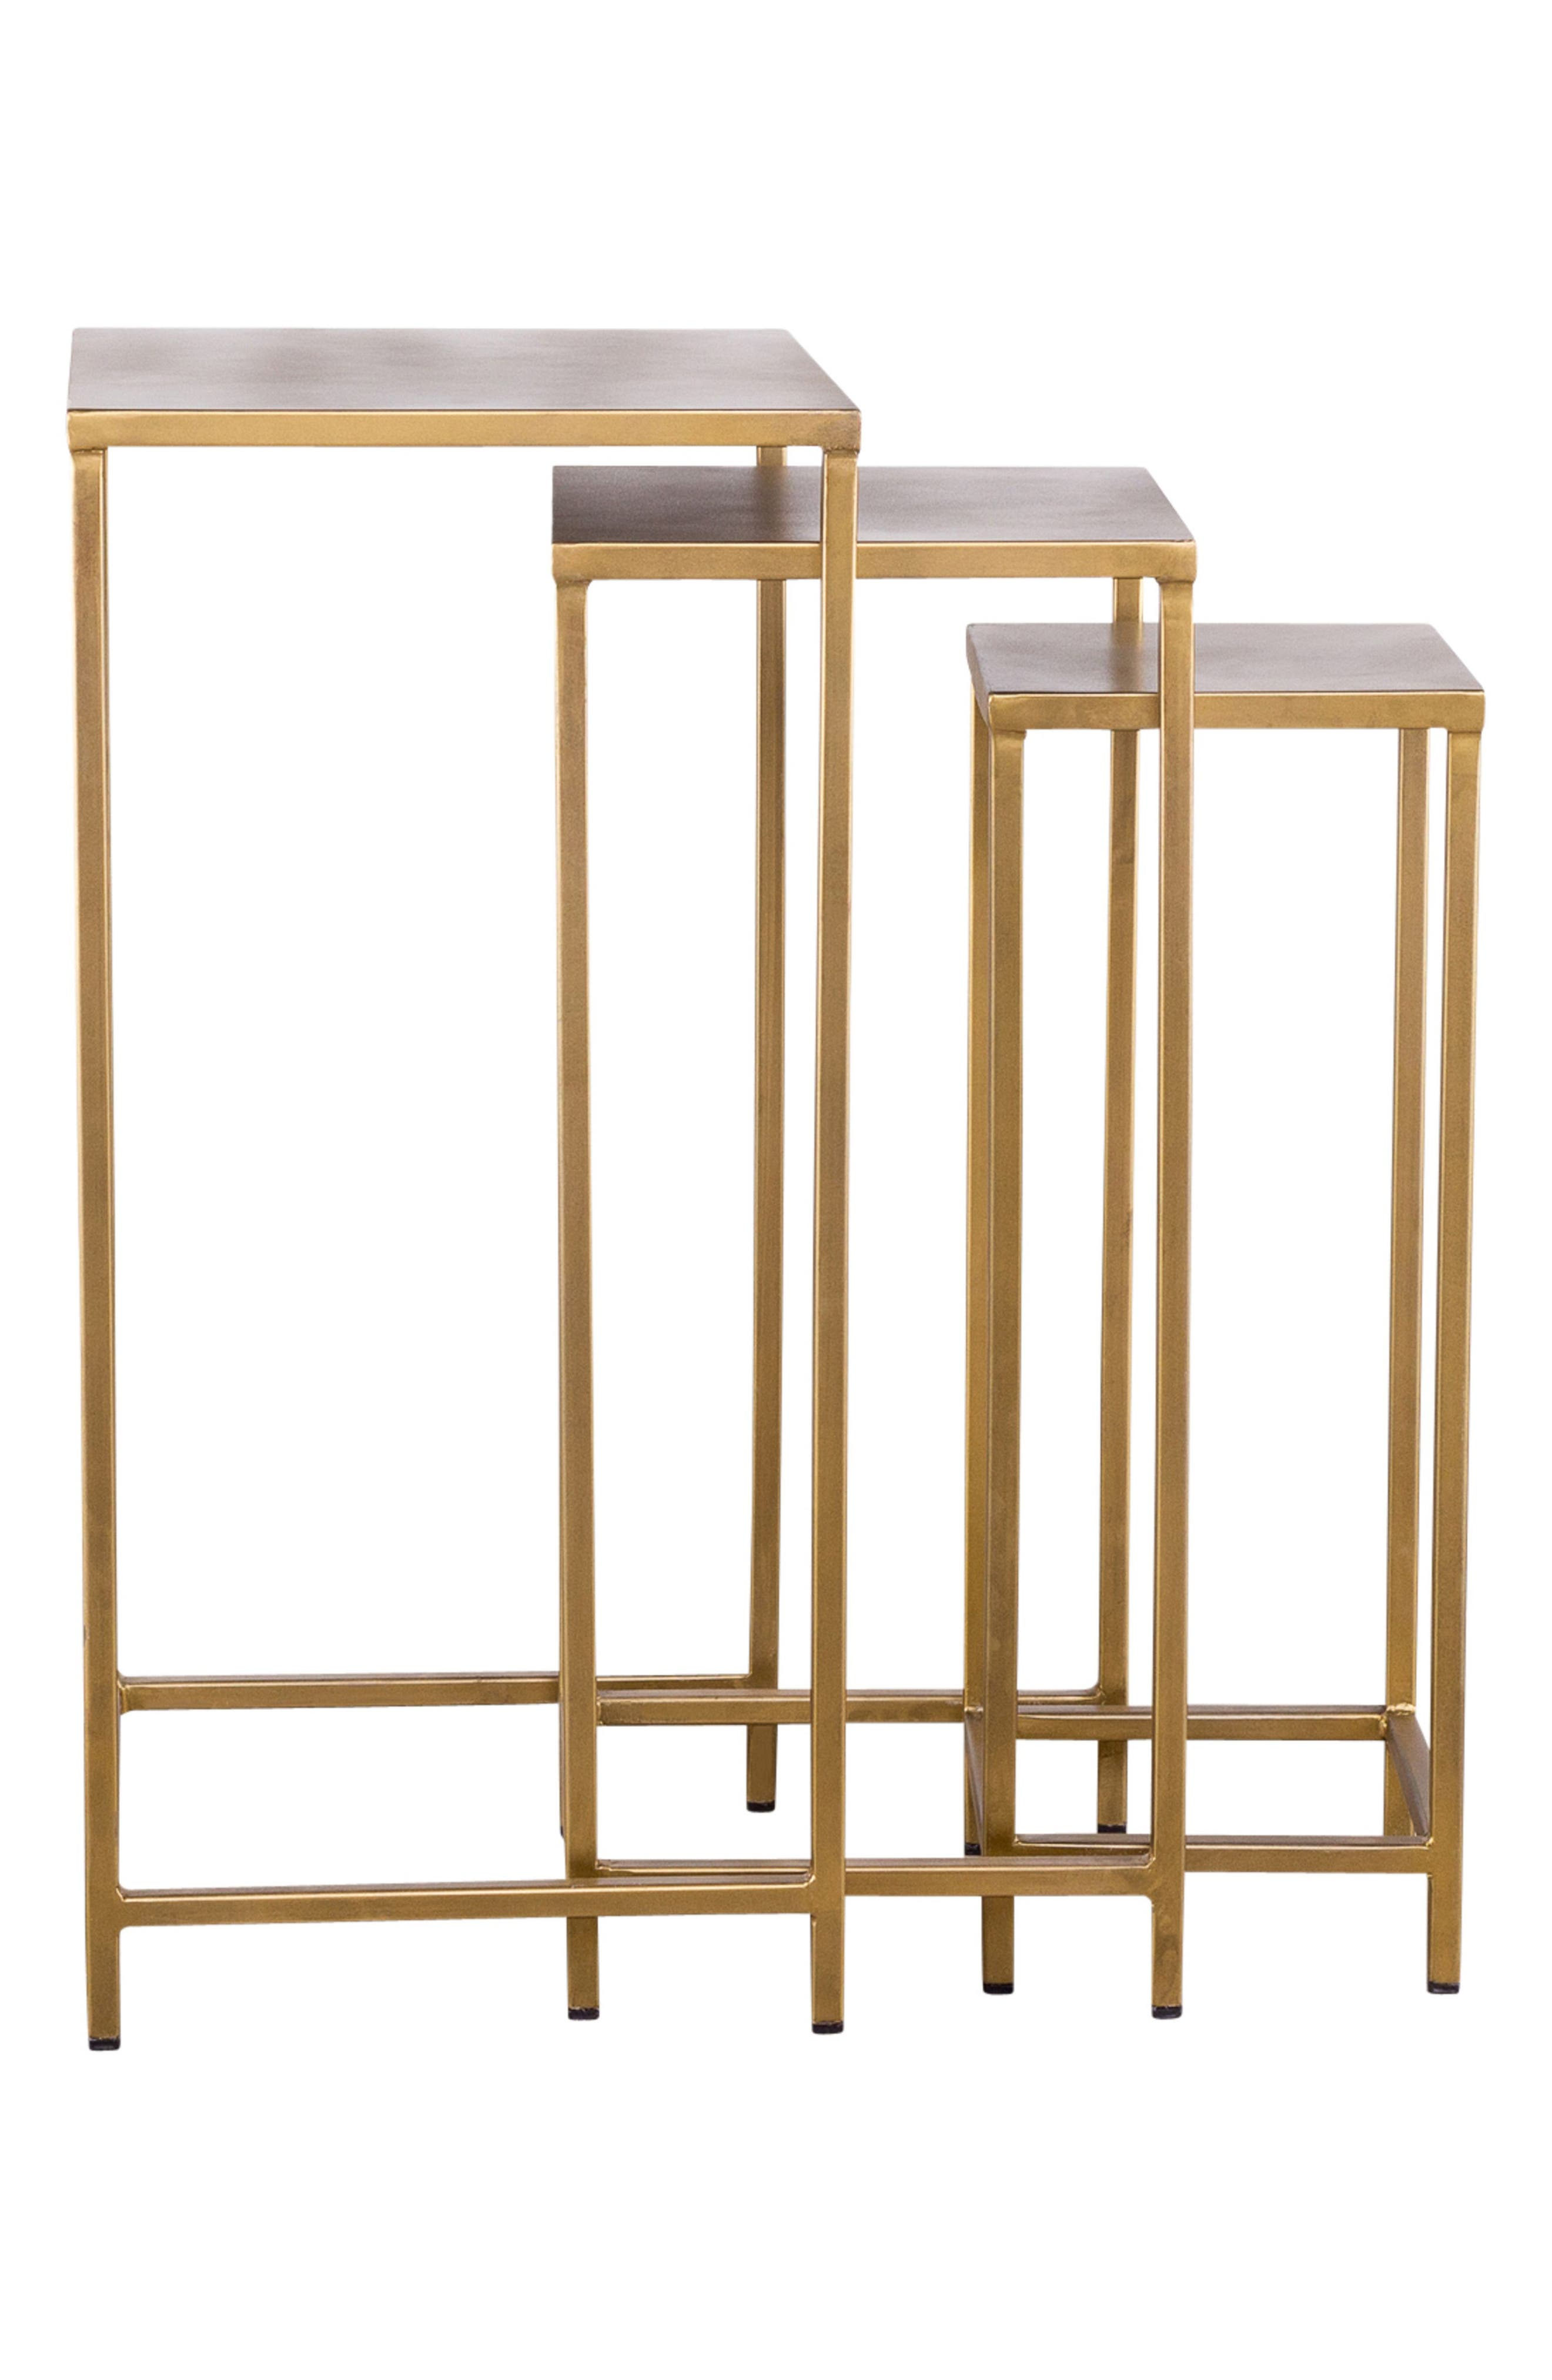 Pollock Set of 3 Tall Nesting Tables,                             Alternate thumbnail 3, color,                             Brass